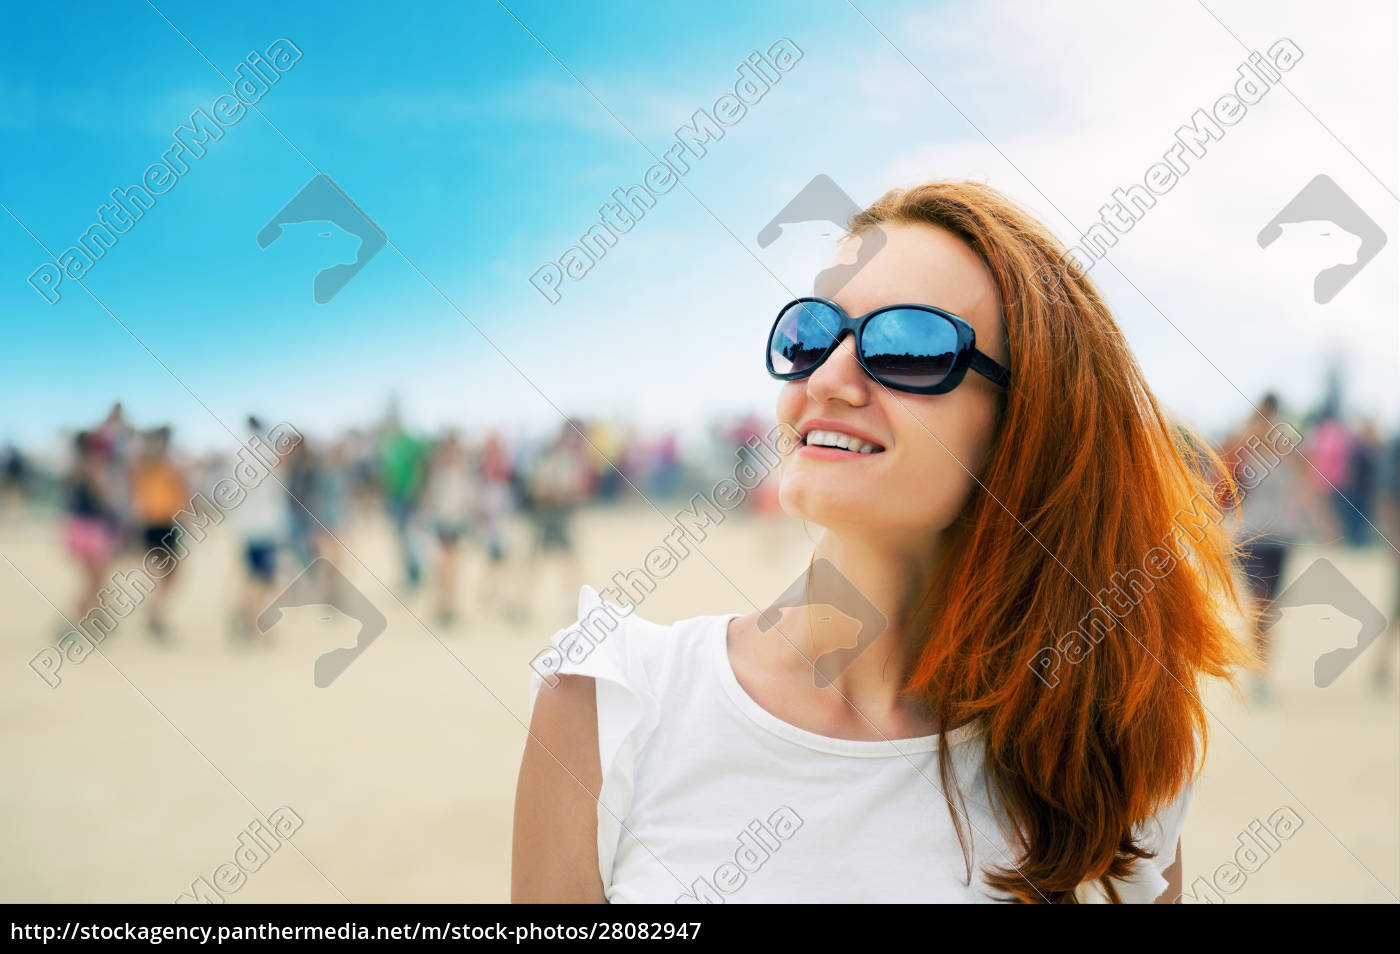 woman, at, a, beach, party - 28082947